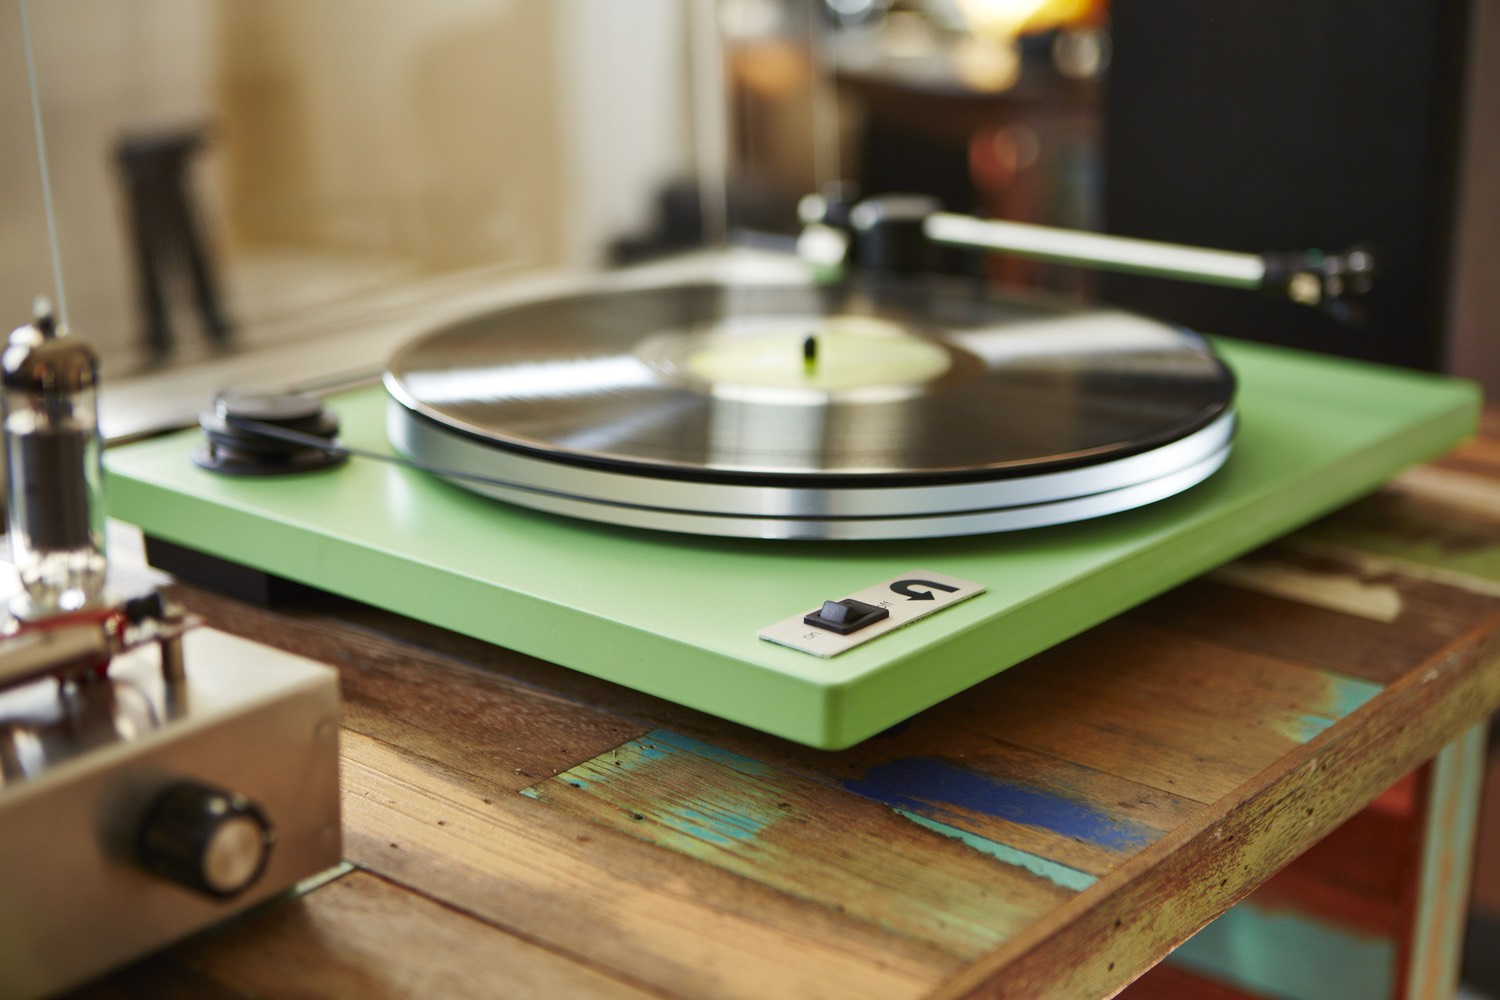 Orbit Turntable by U-Turn Audio. ($179)